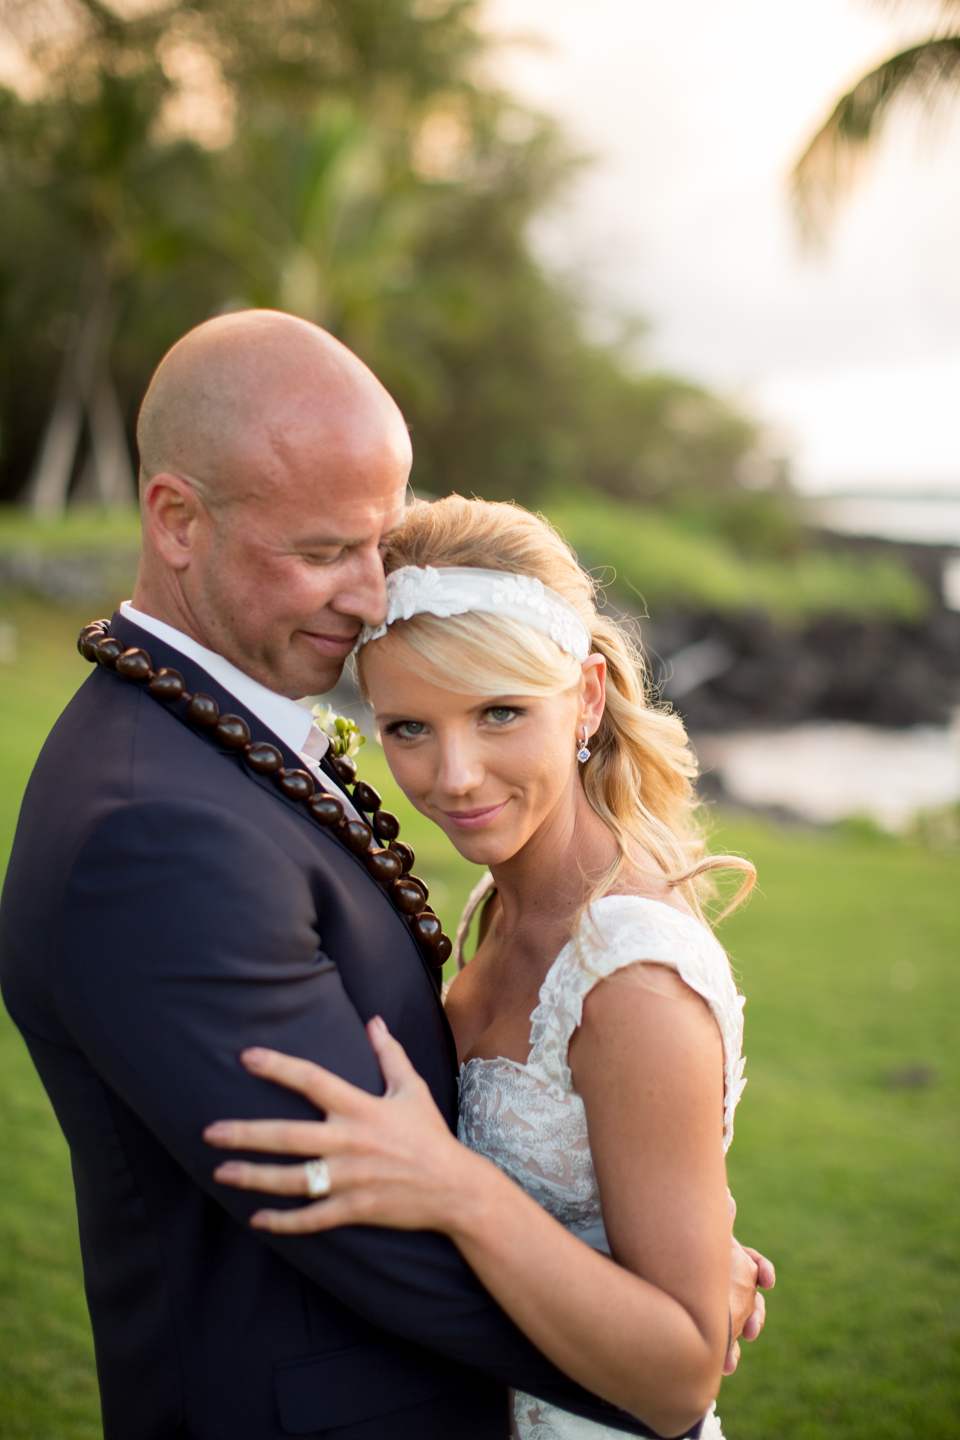 067_maui-wedding-photographer-kaua-photography